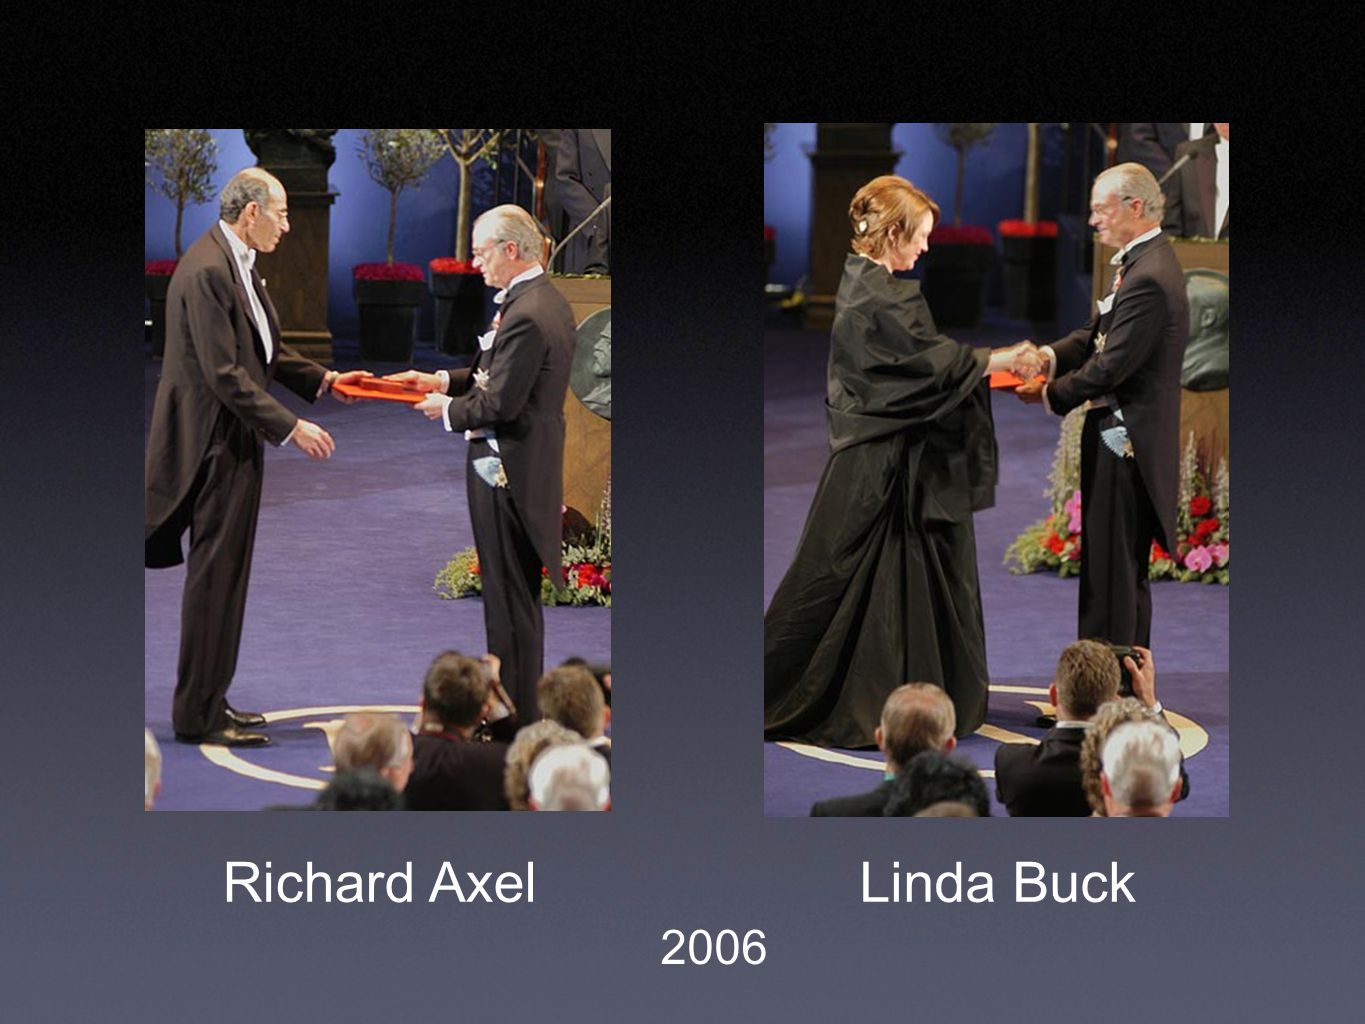 Richard AxelLinda Buck 2006